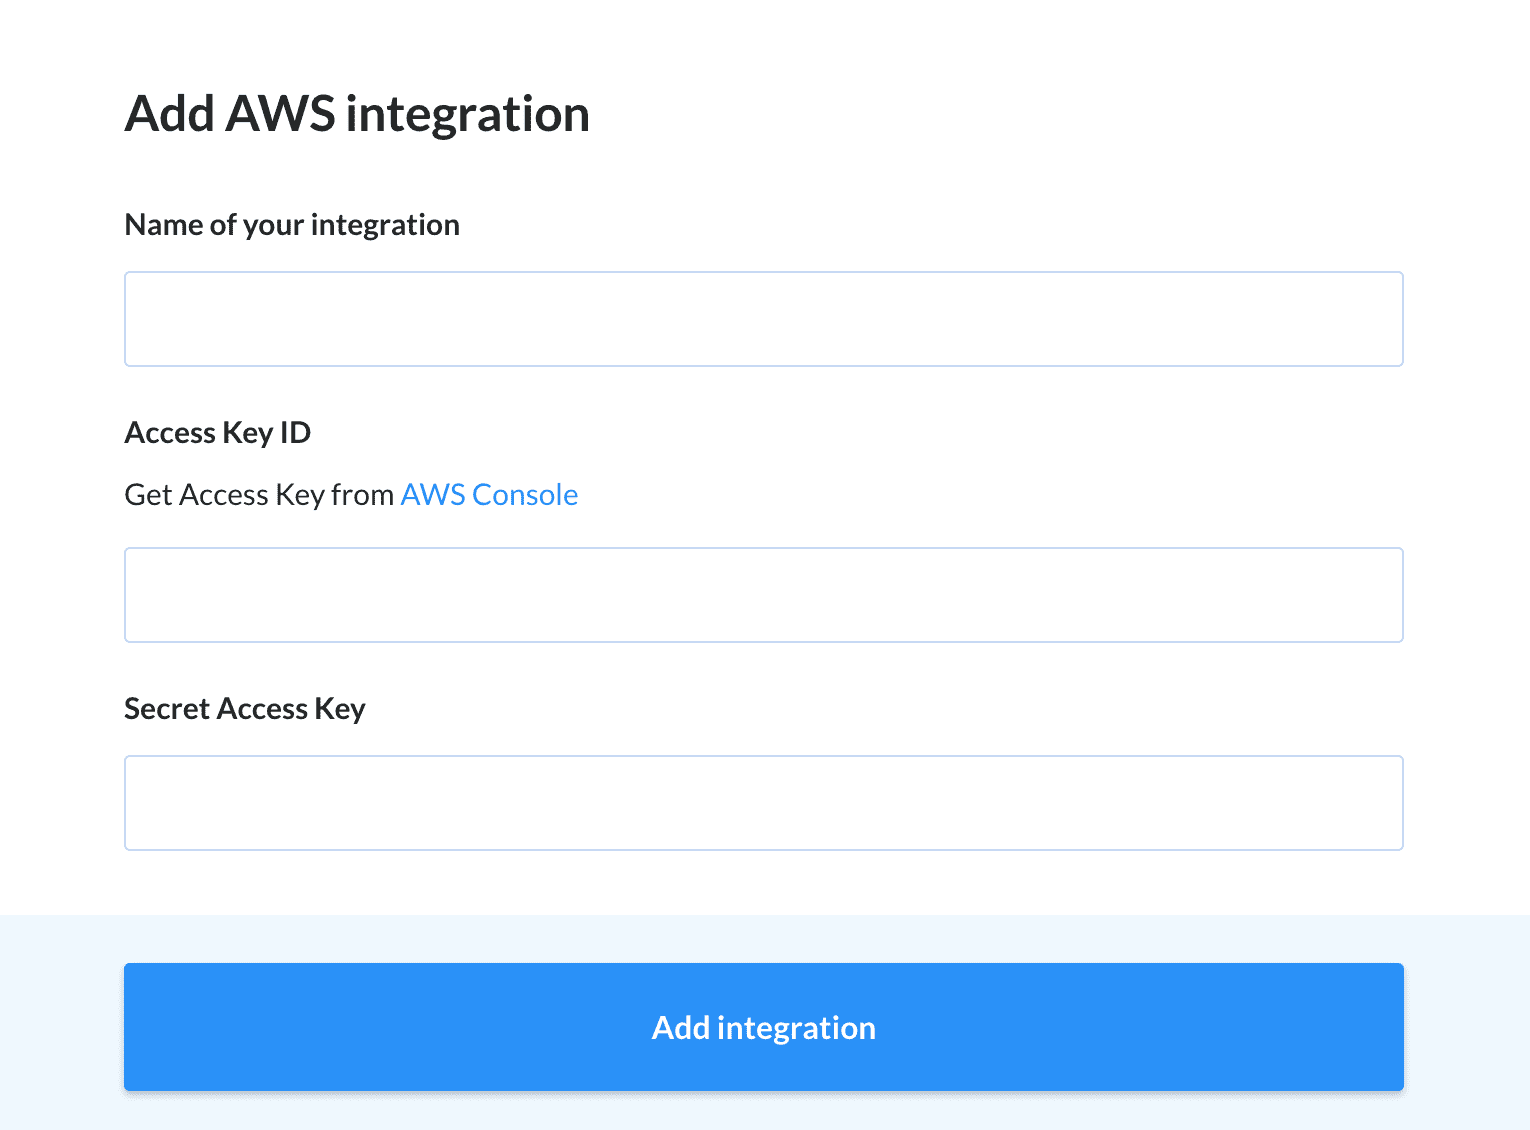 Adding an AWS integration